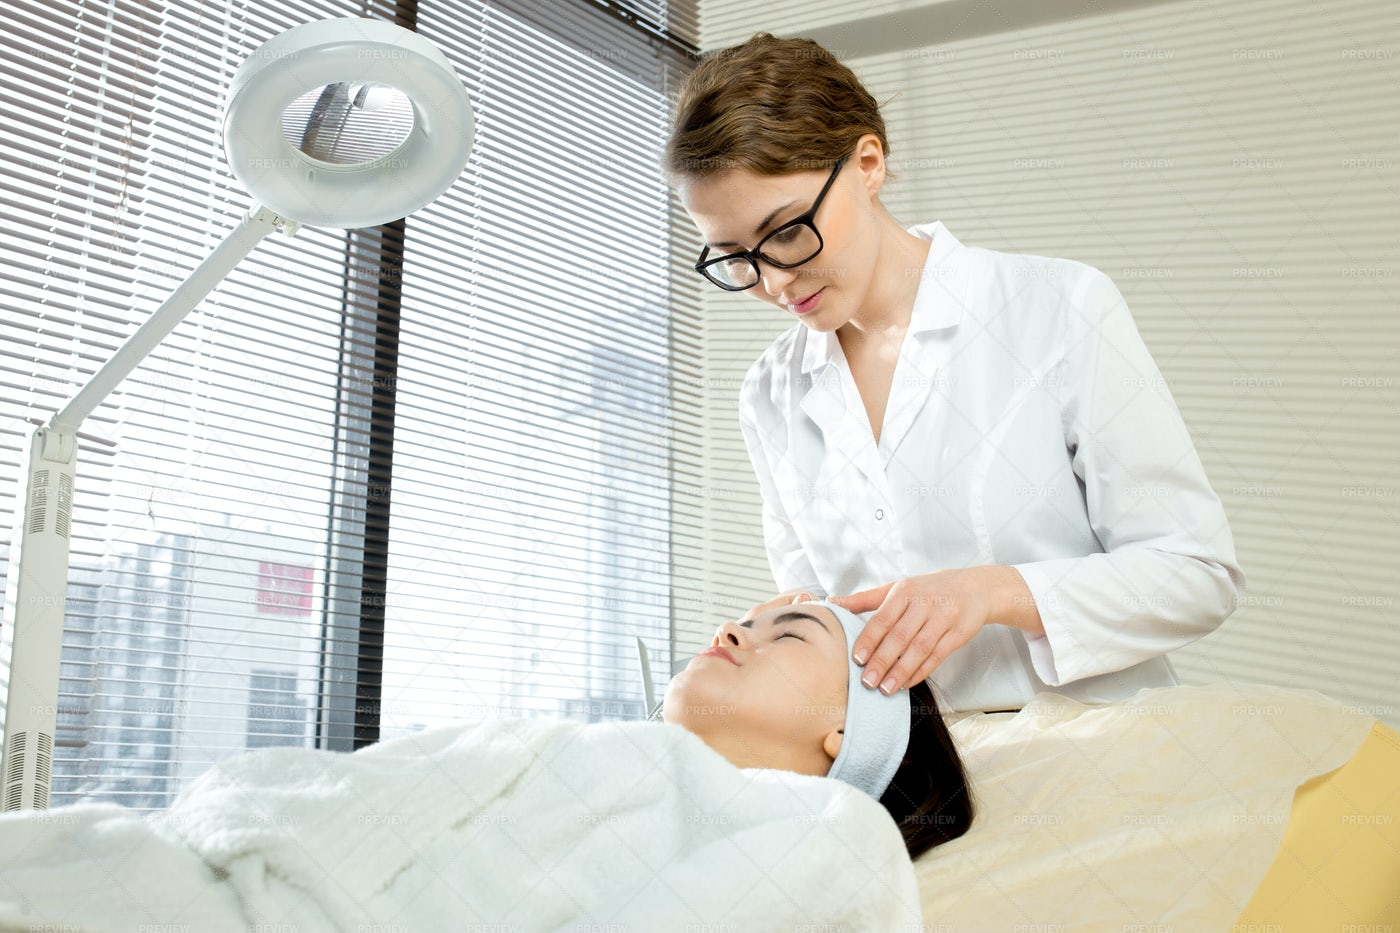 Young Cosmetologist Focused On Work: Stock Photos